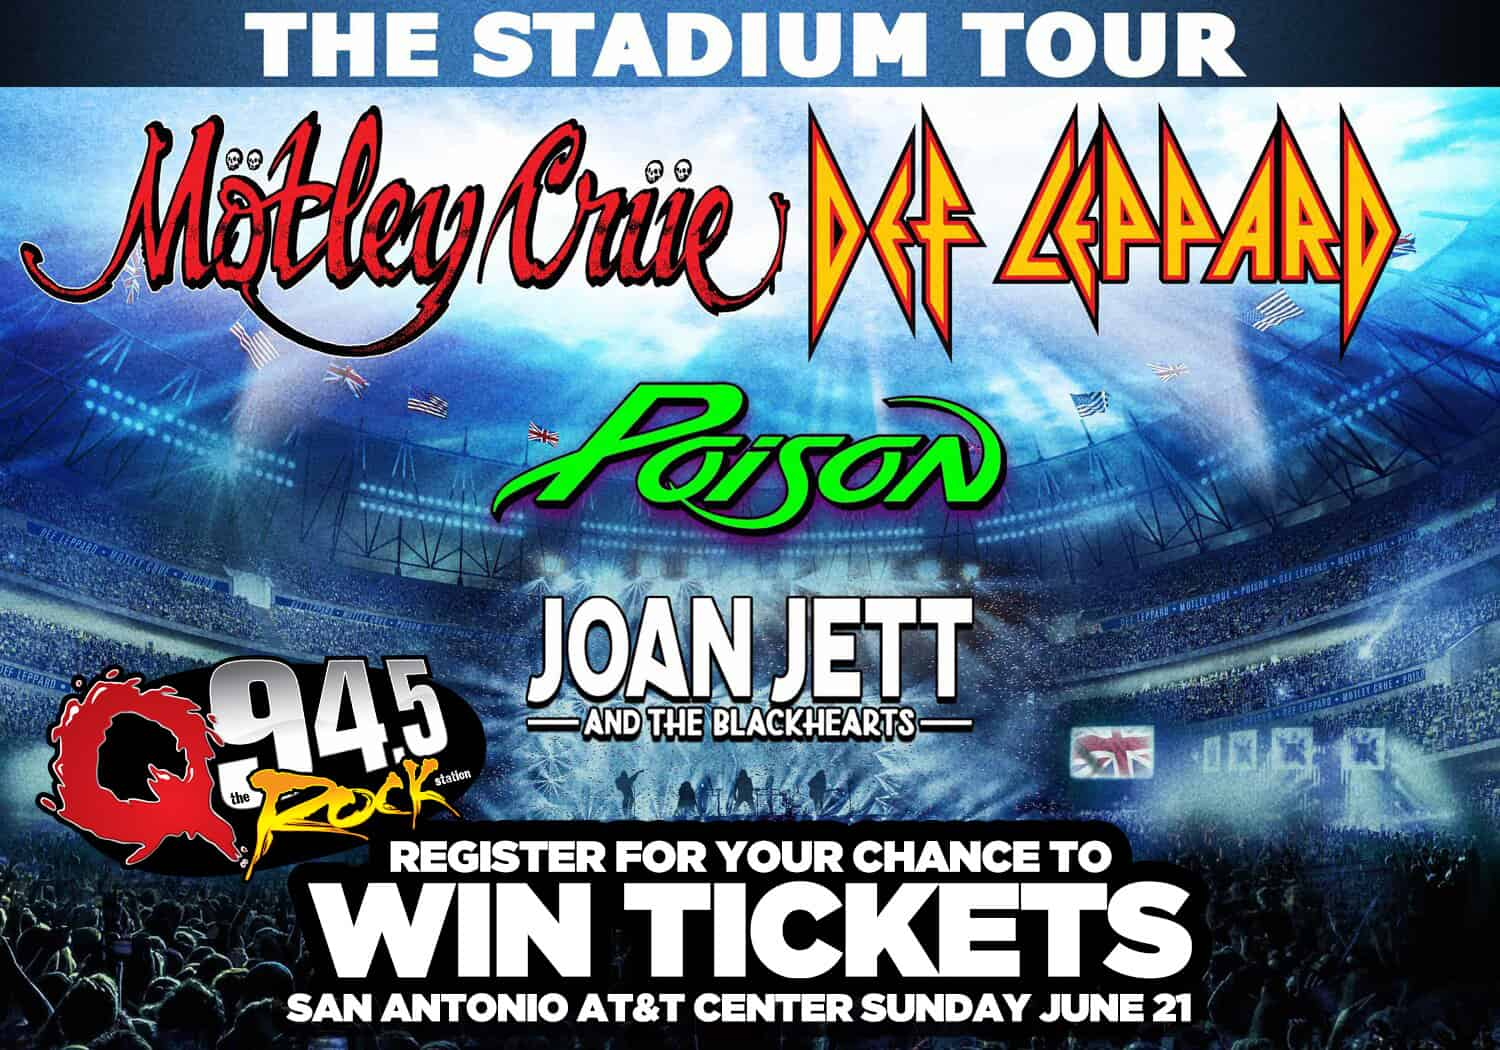 Register for your chance to win tickets to see this incredible Stadium Tour!